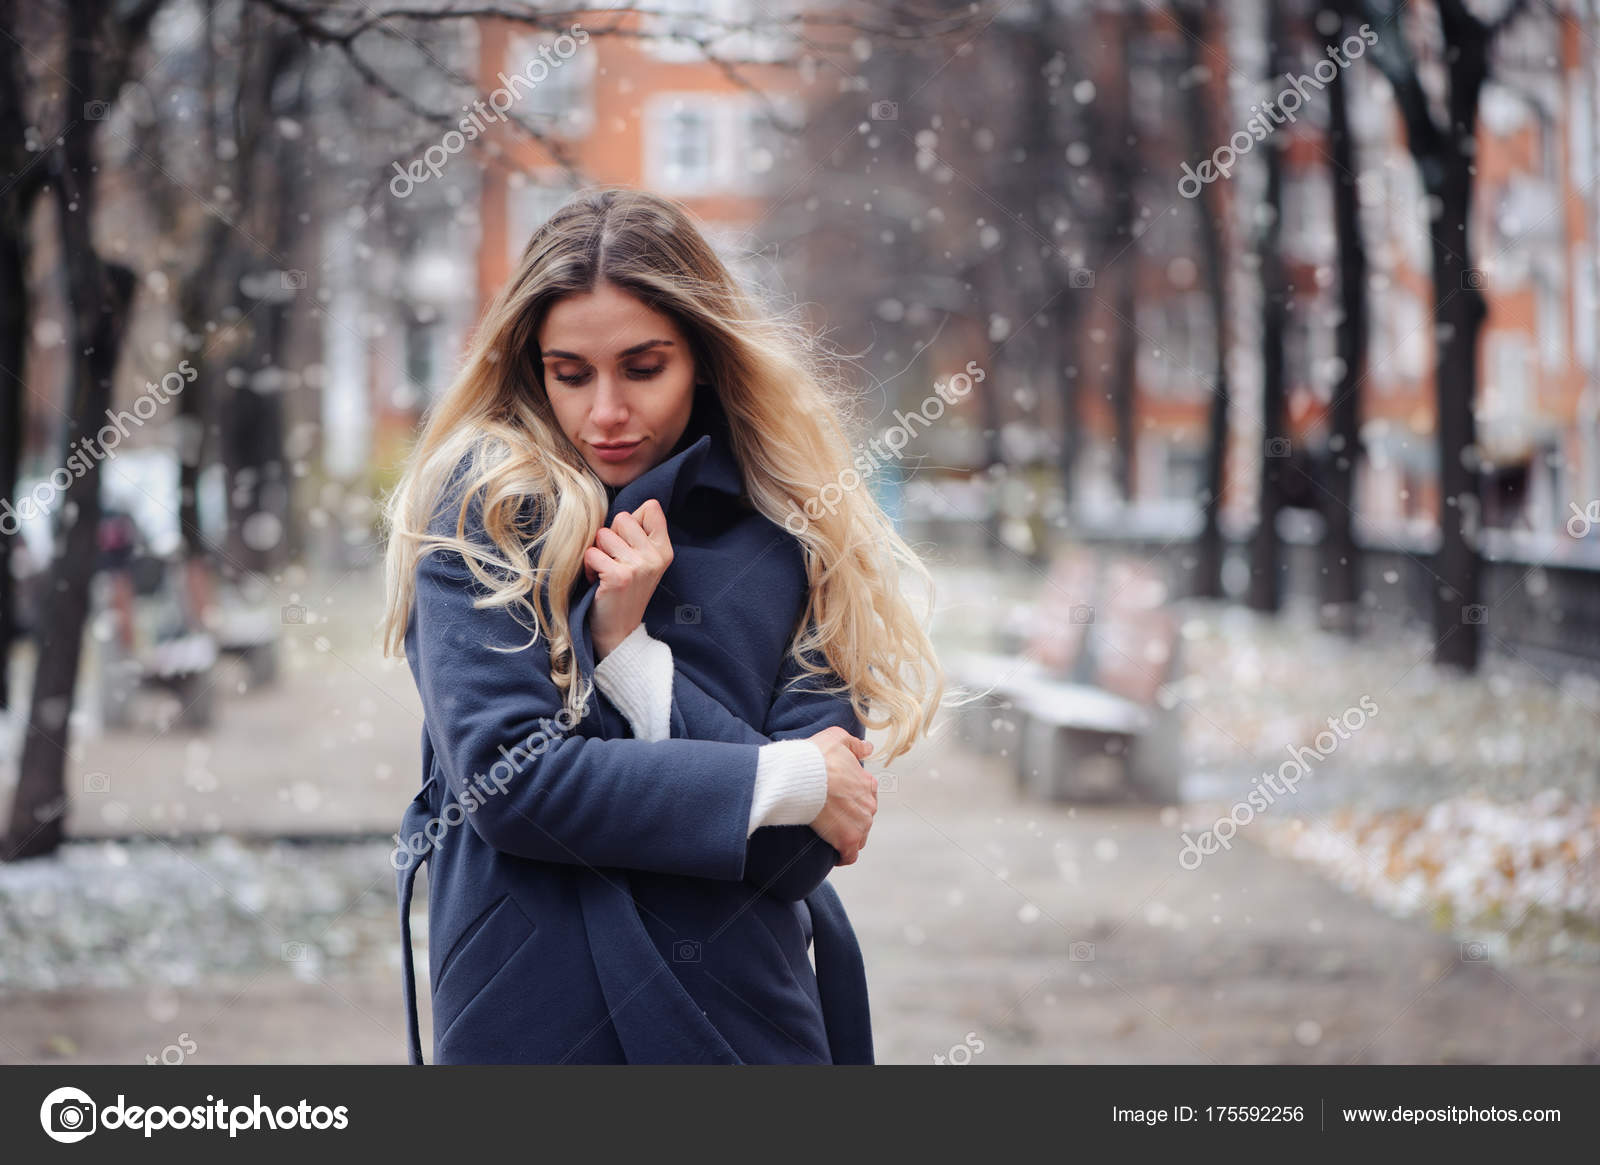 1d282ef3a572 depositphotos_175592256-stock-photo-winter-portrait-young-woman-walking.jpg